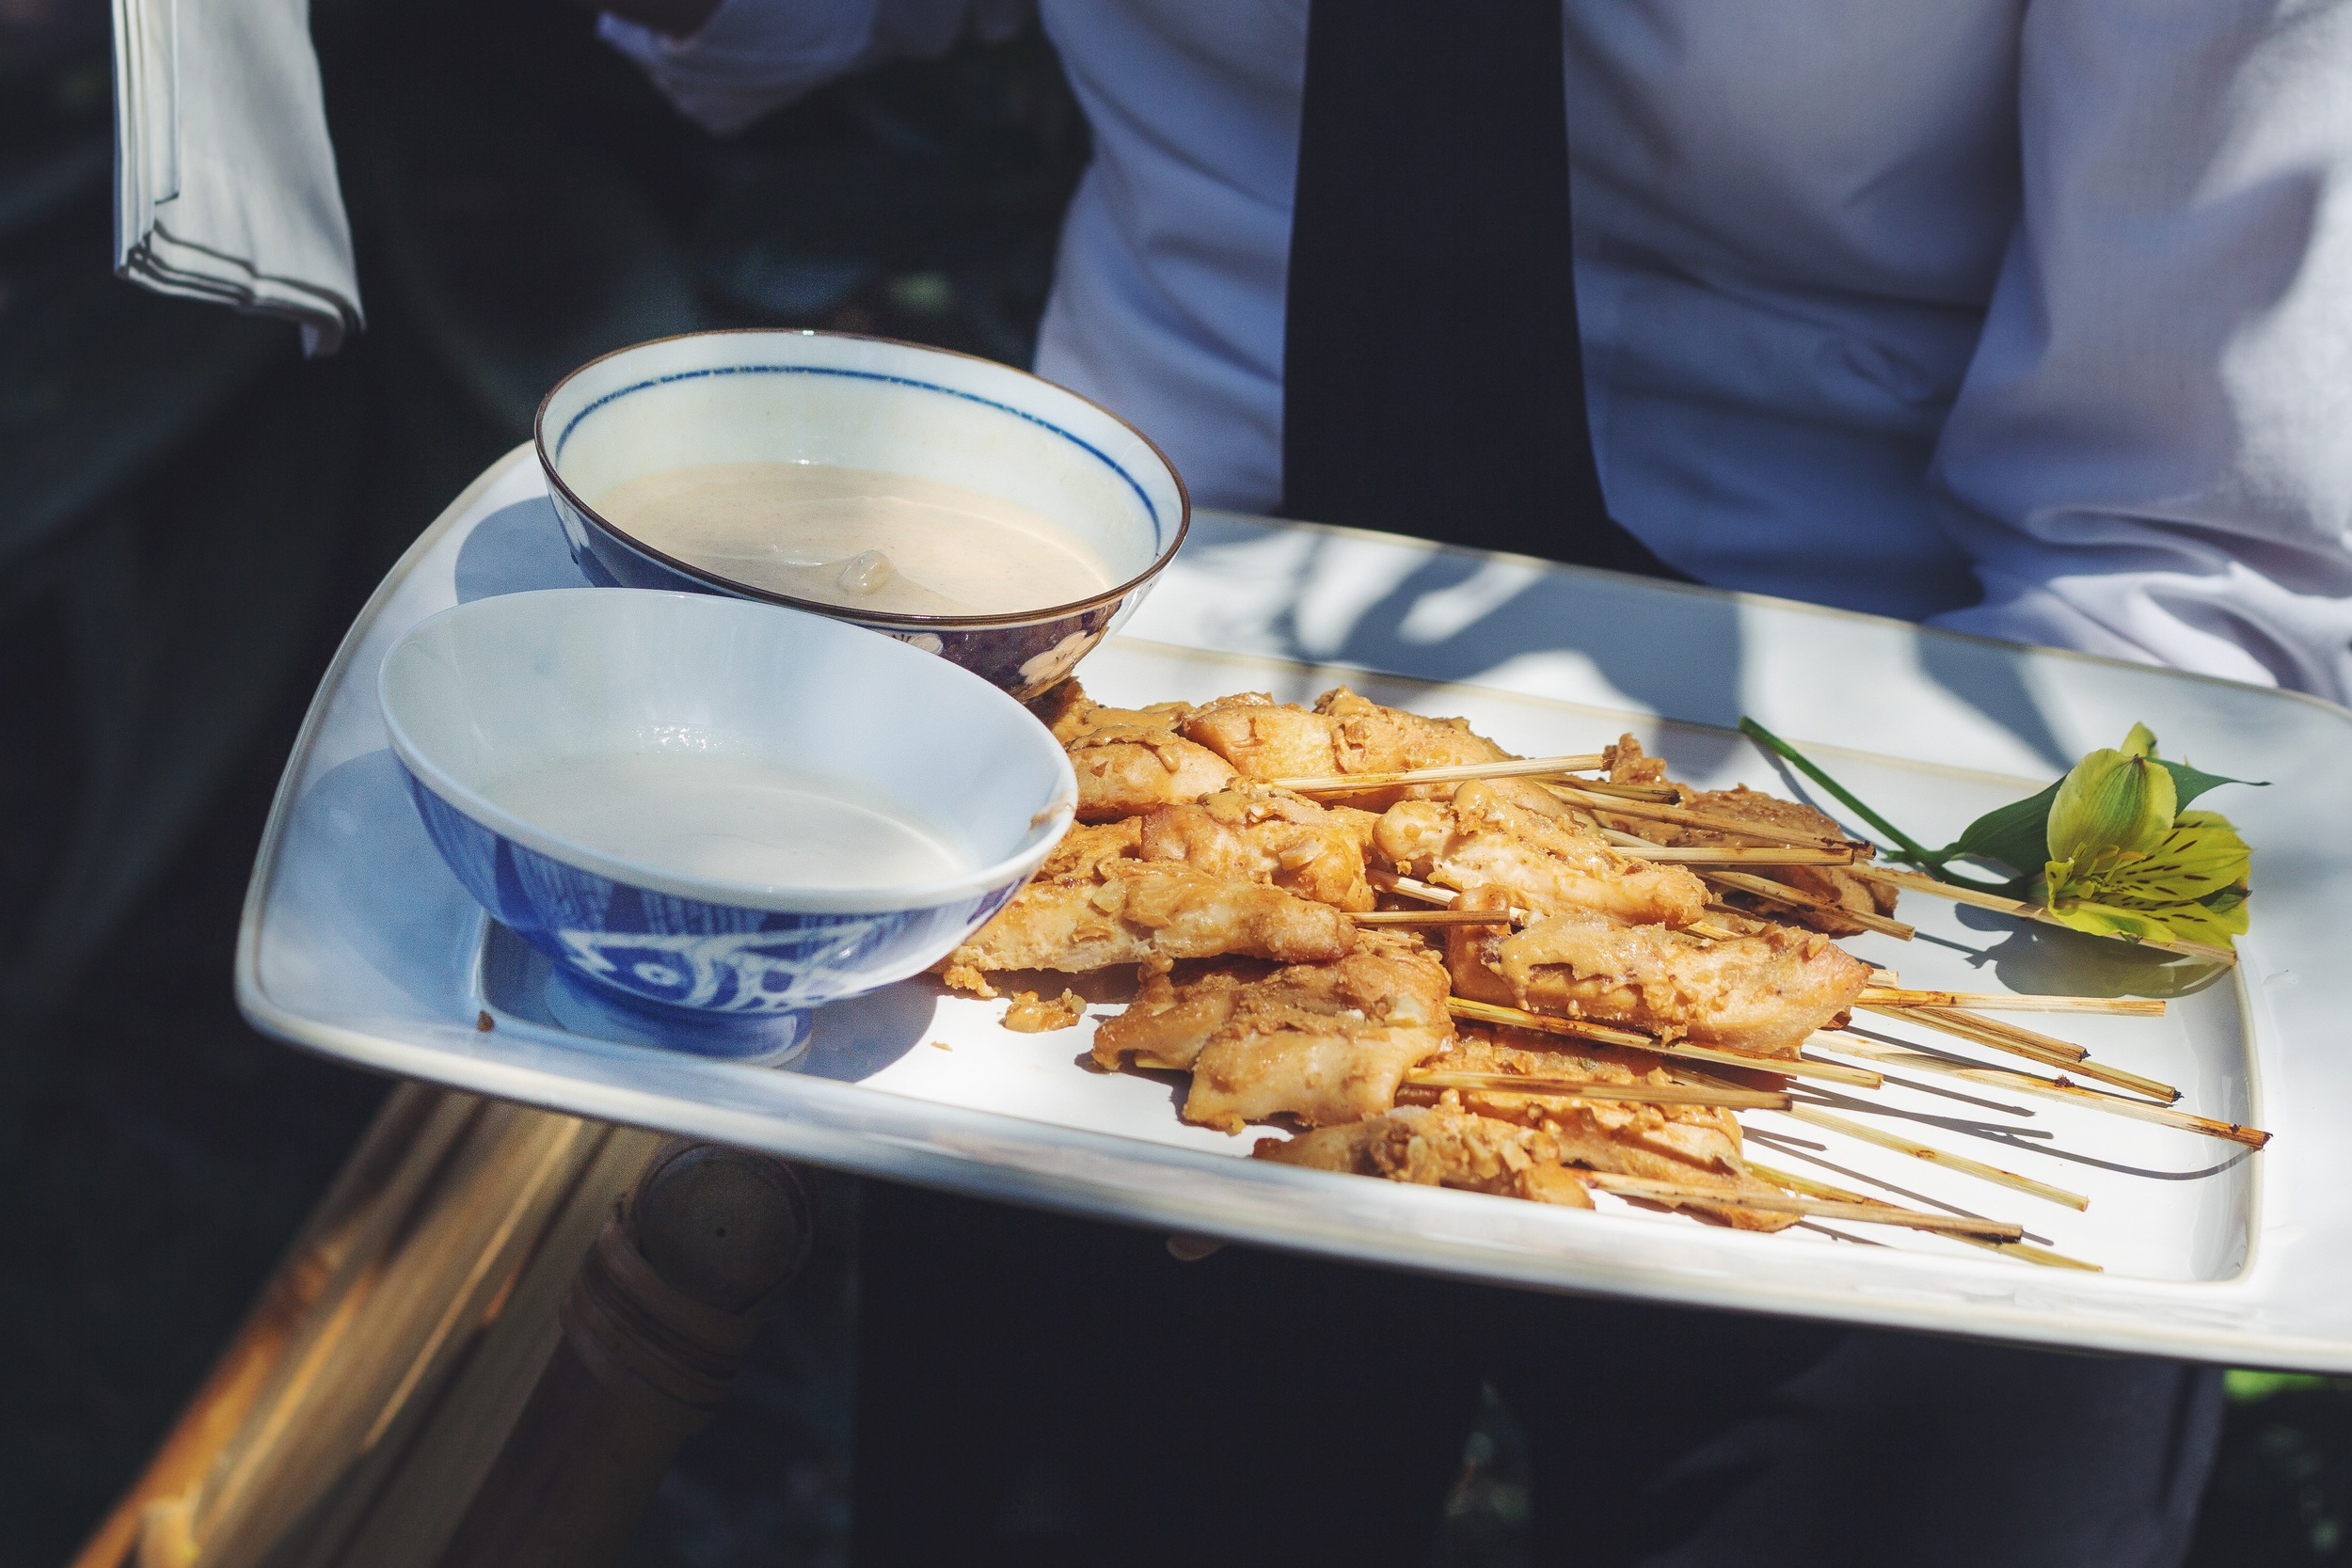 Chicken Skewers with the choice of Coconut Milk or Peanut sauce.